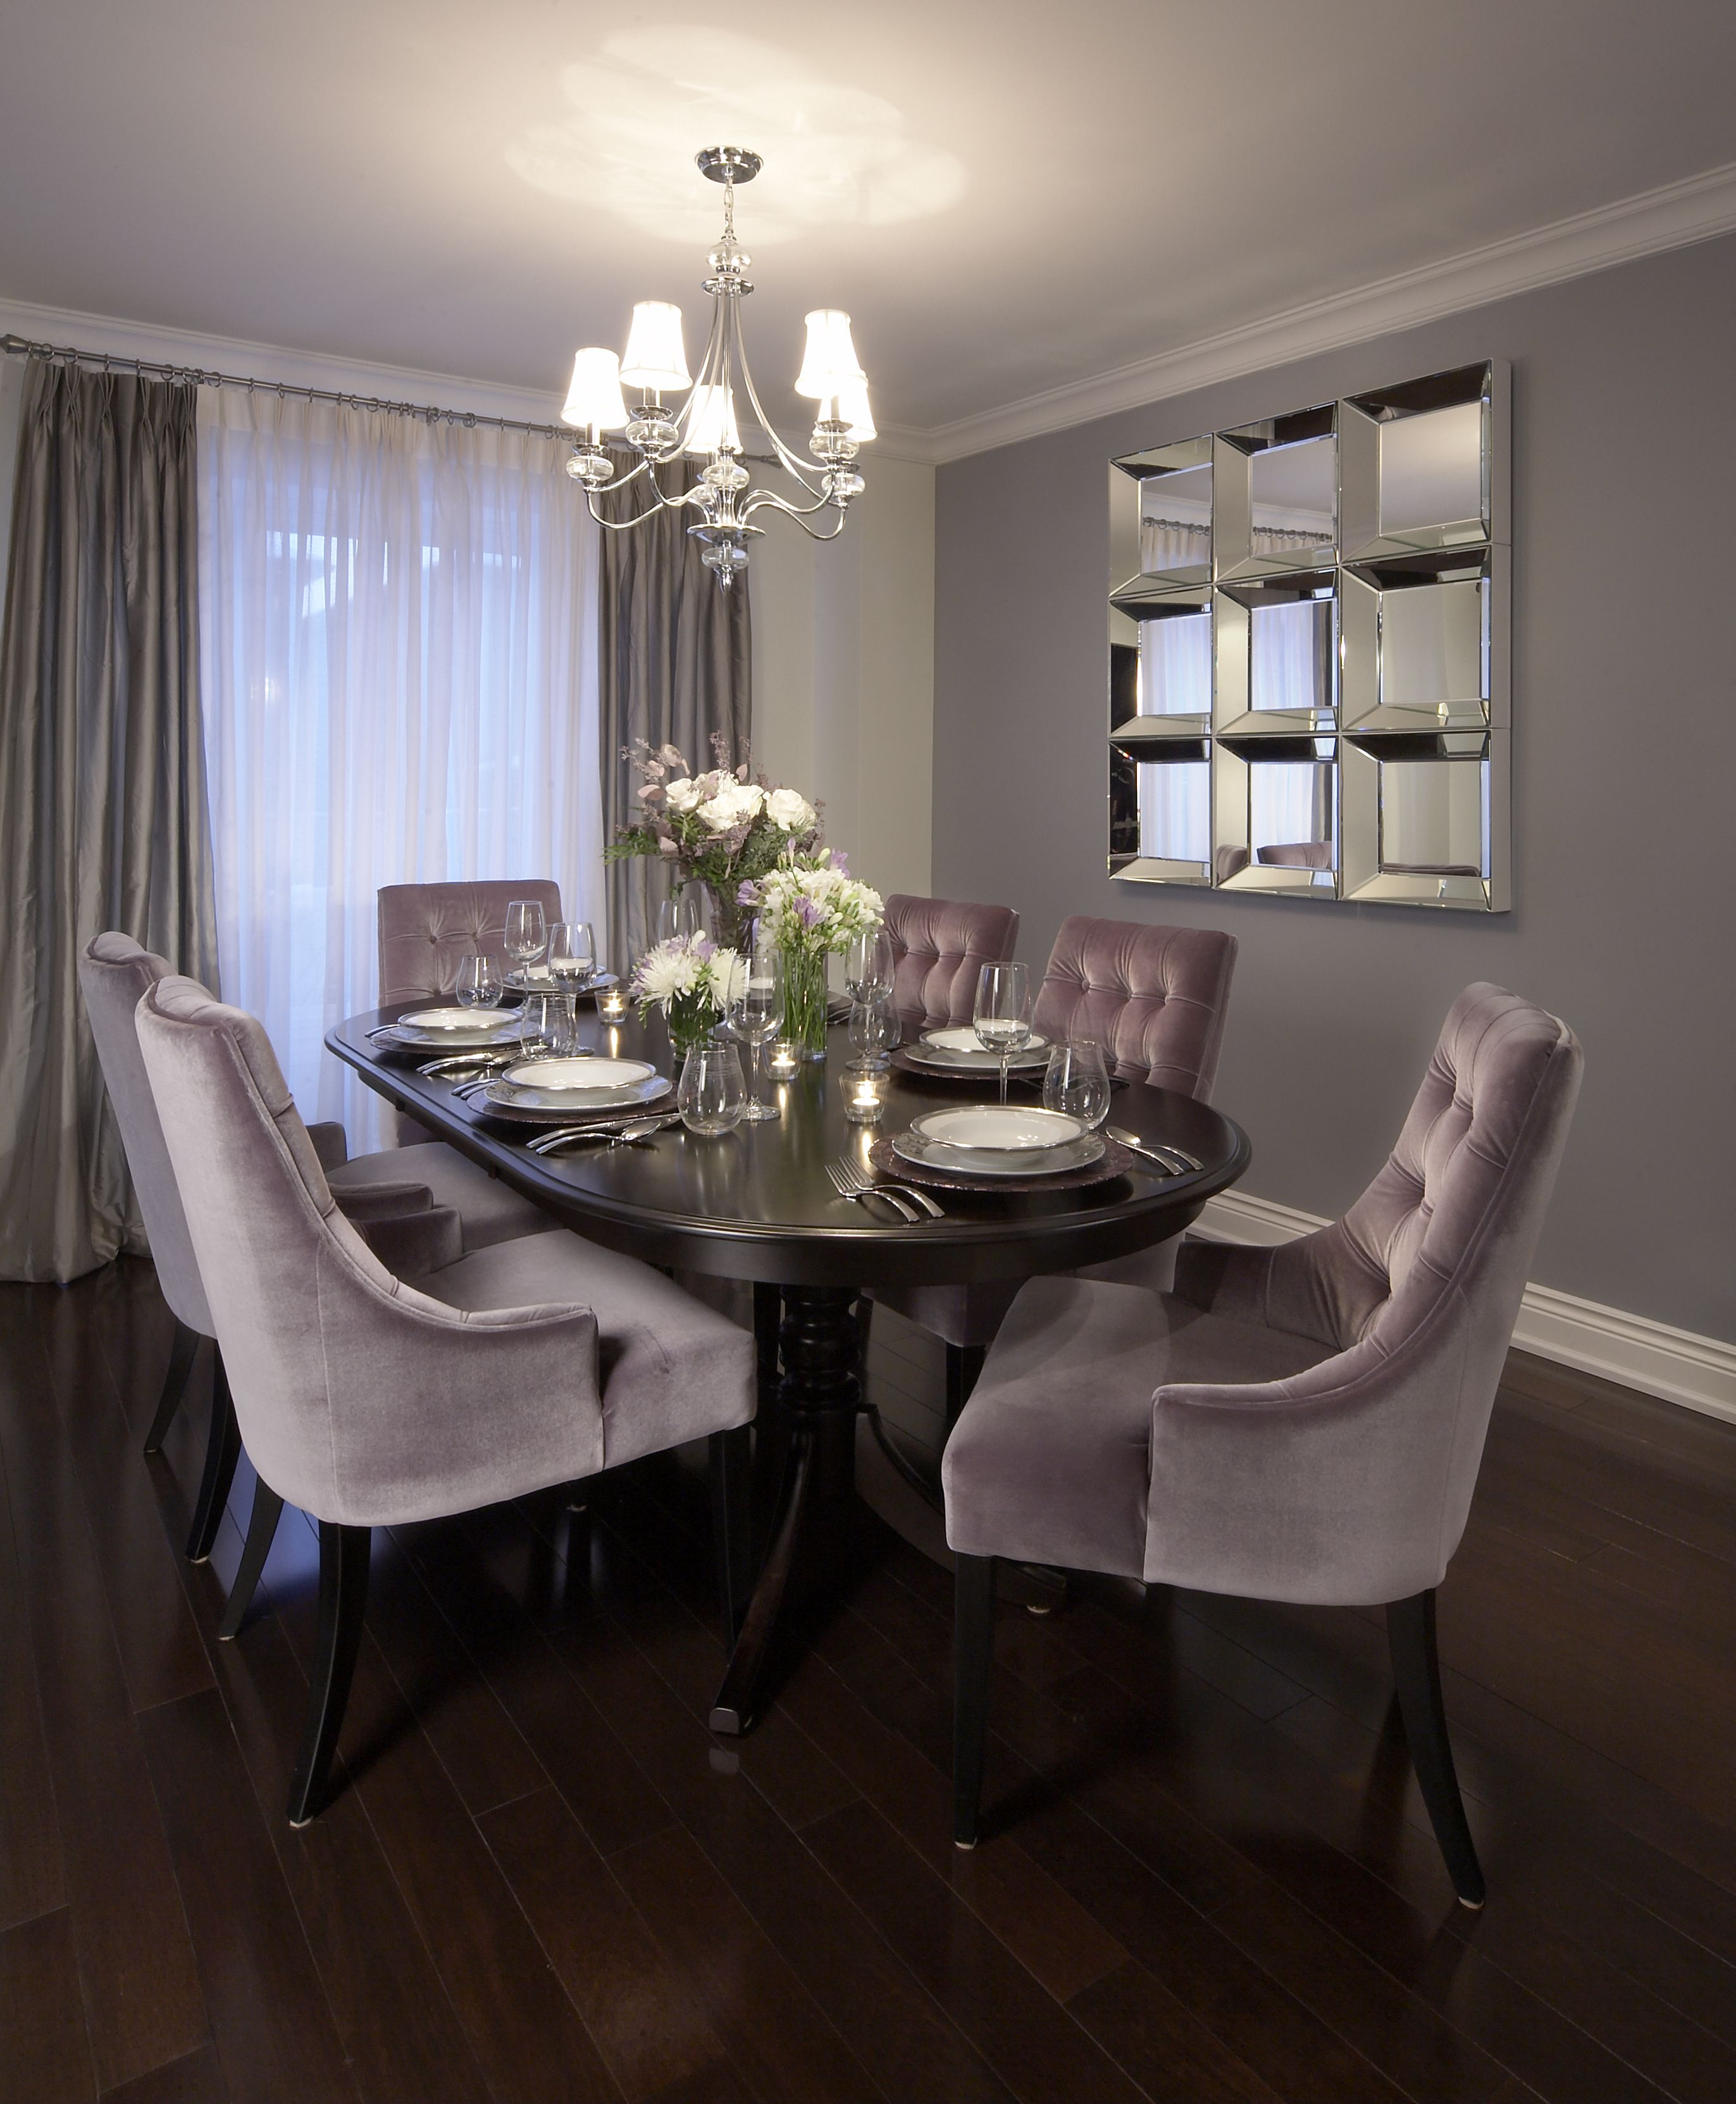 dining room with wall mirror, chandelier, dark wood table and